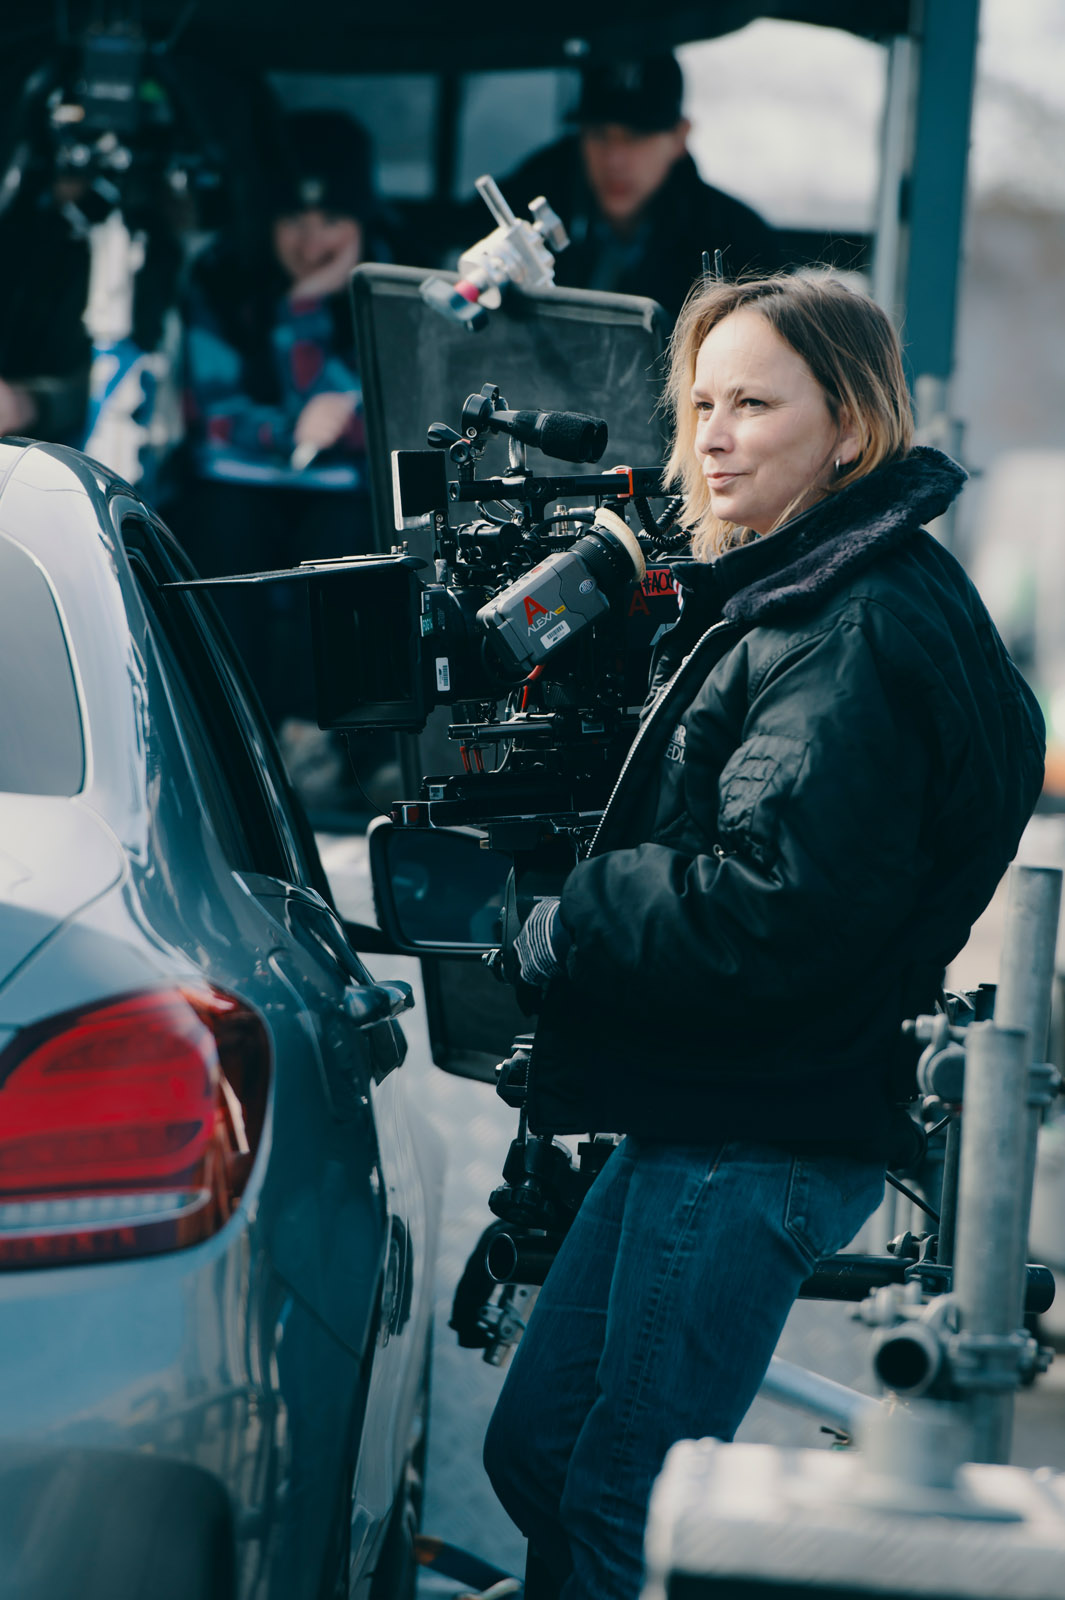 Cinematographer Oona Menges - Behind the scenes - Low Loader - Amsterdam, Color - photo credit Ashley Kingsbury